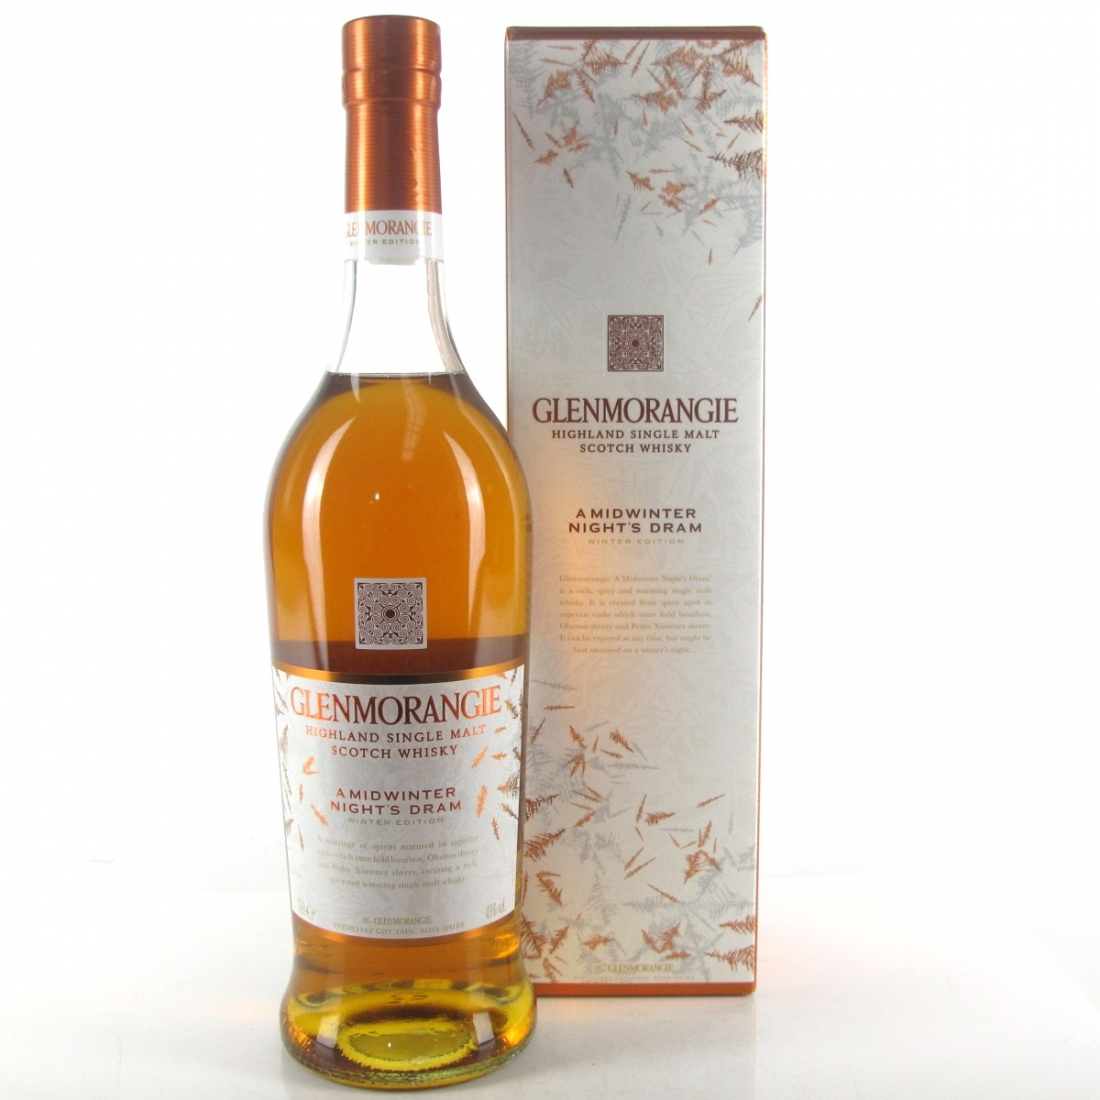 Glenmorangie A Midwinter Night's Dram 2017 Release